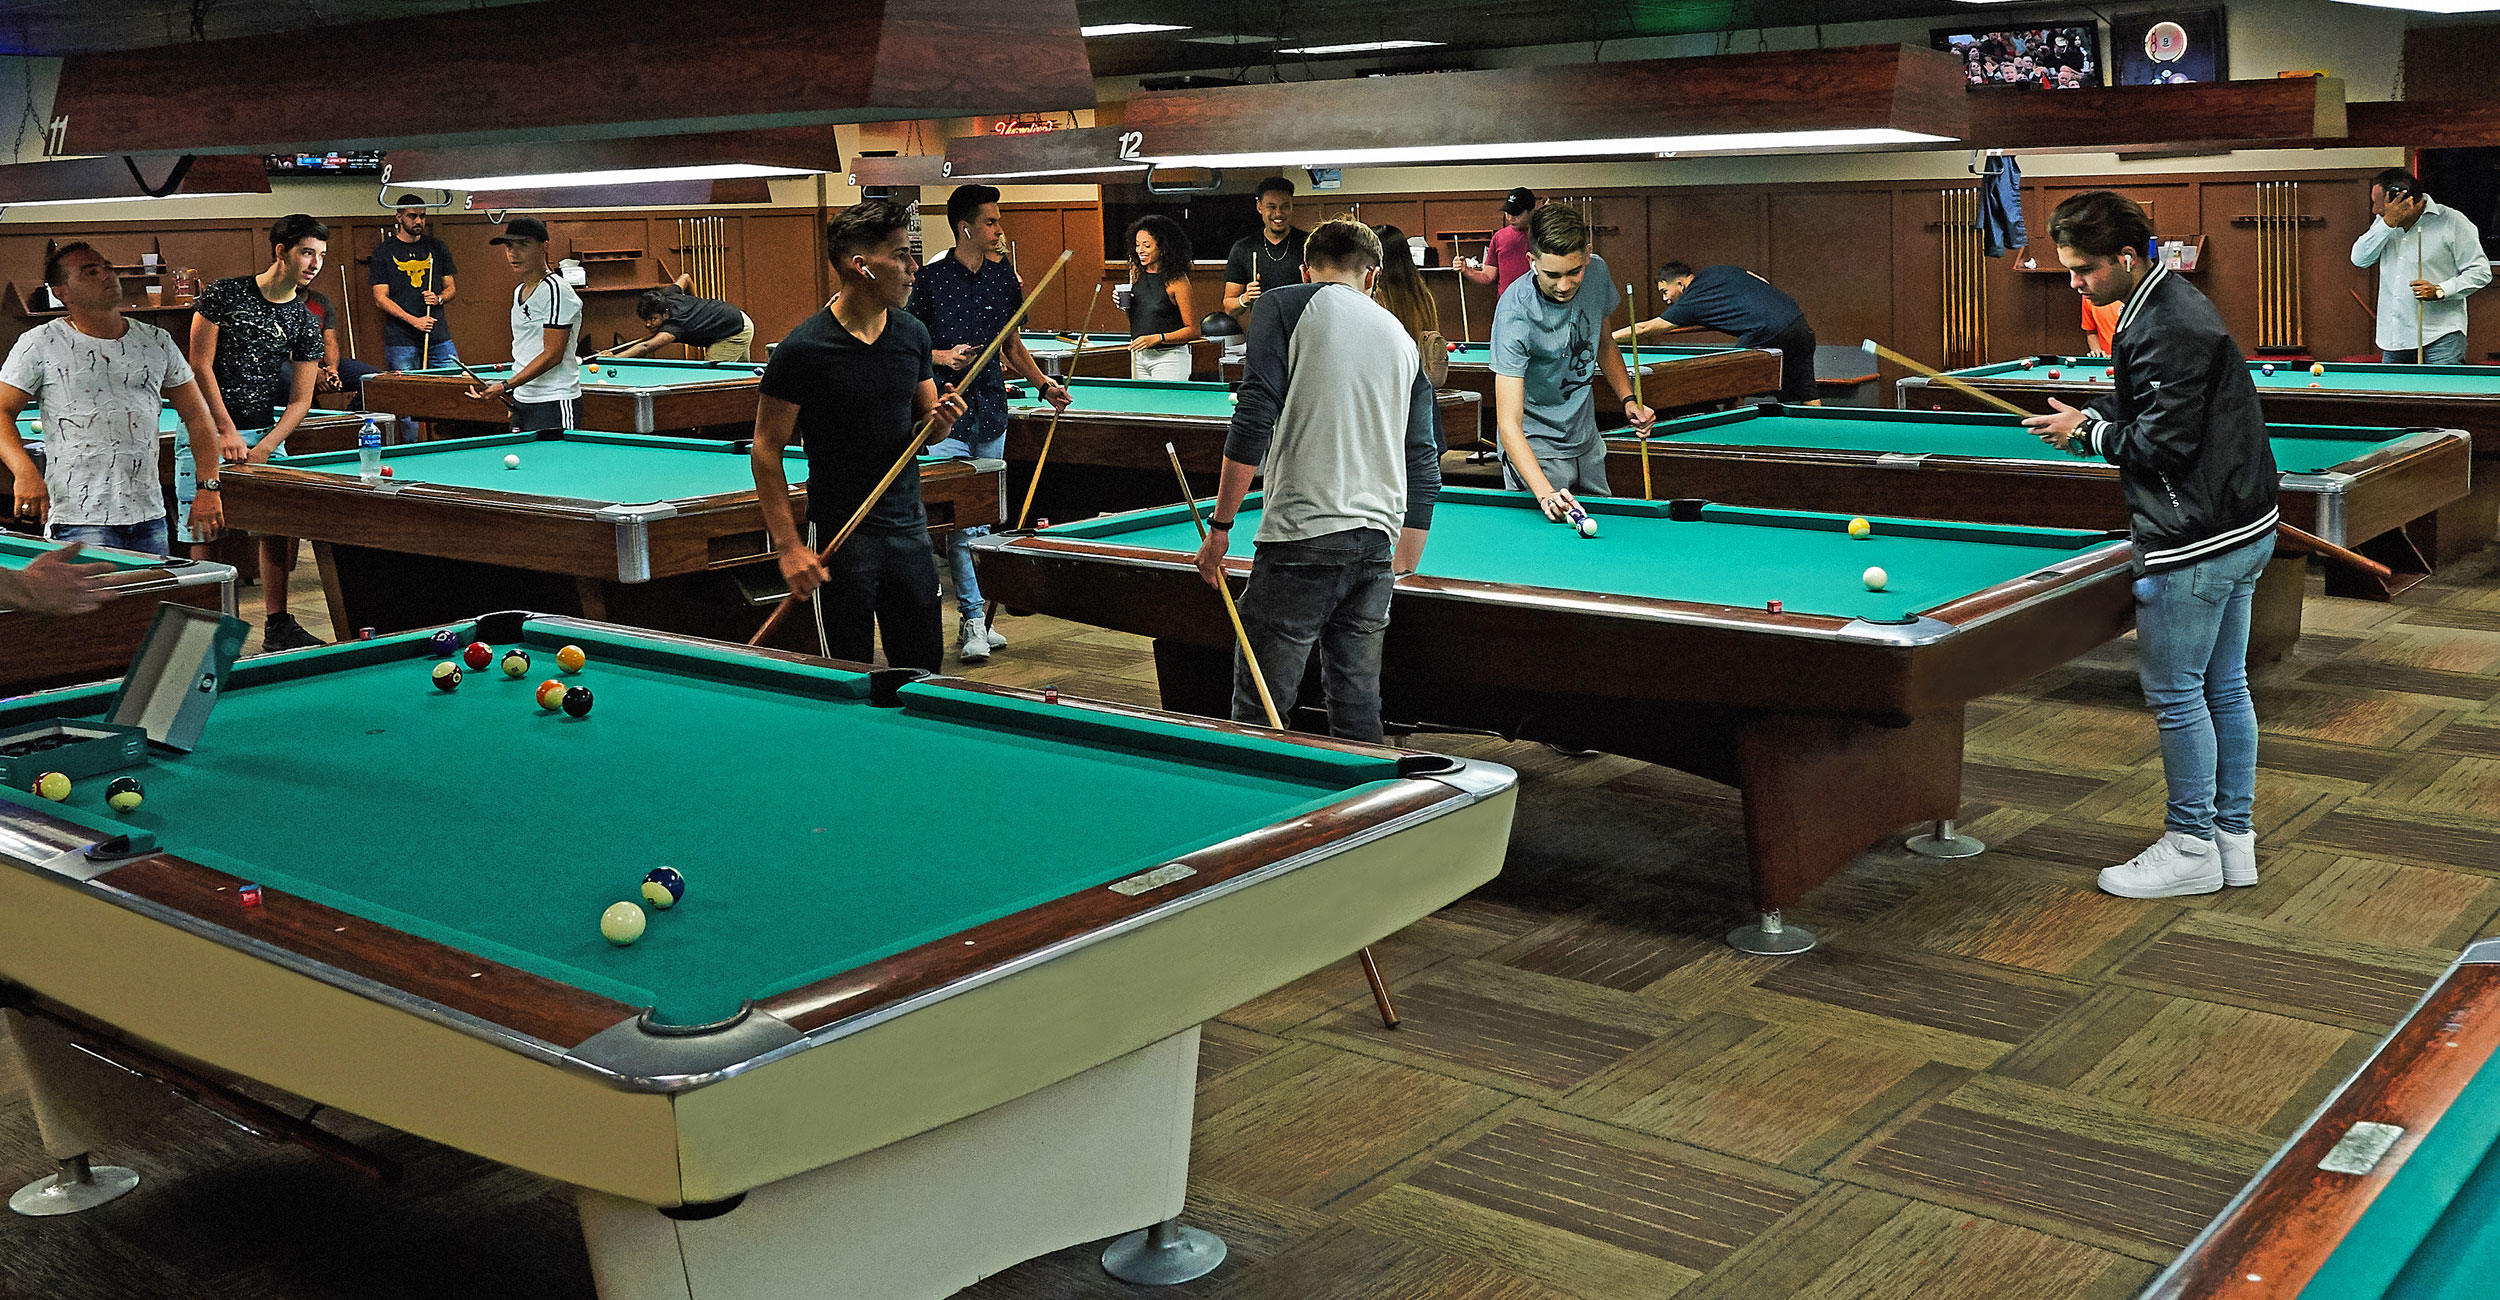 Billiards Picture